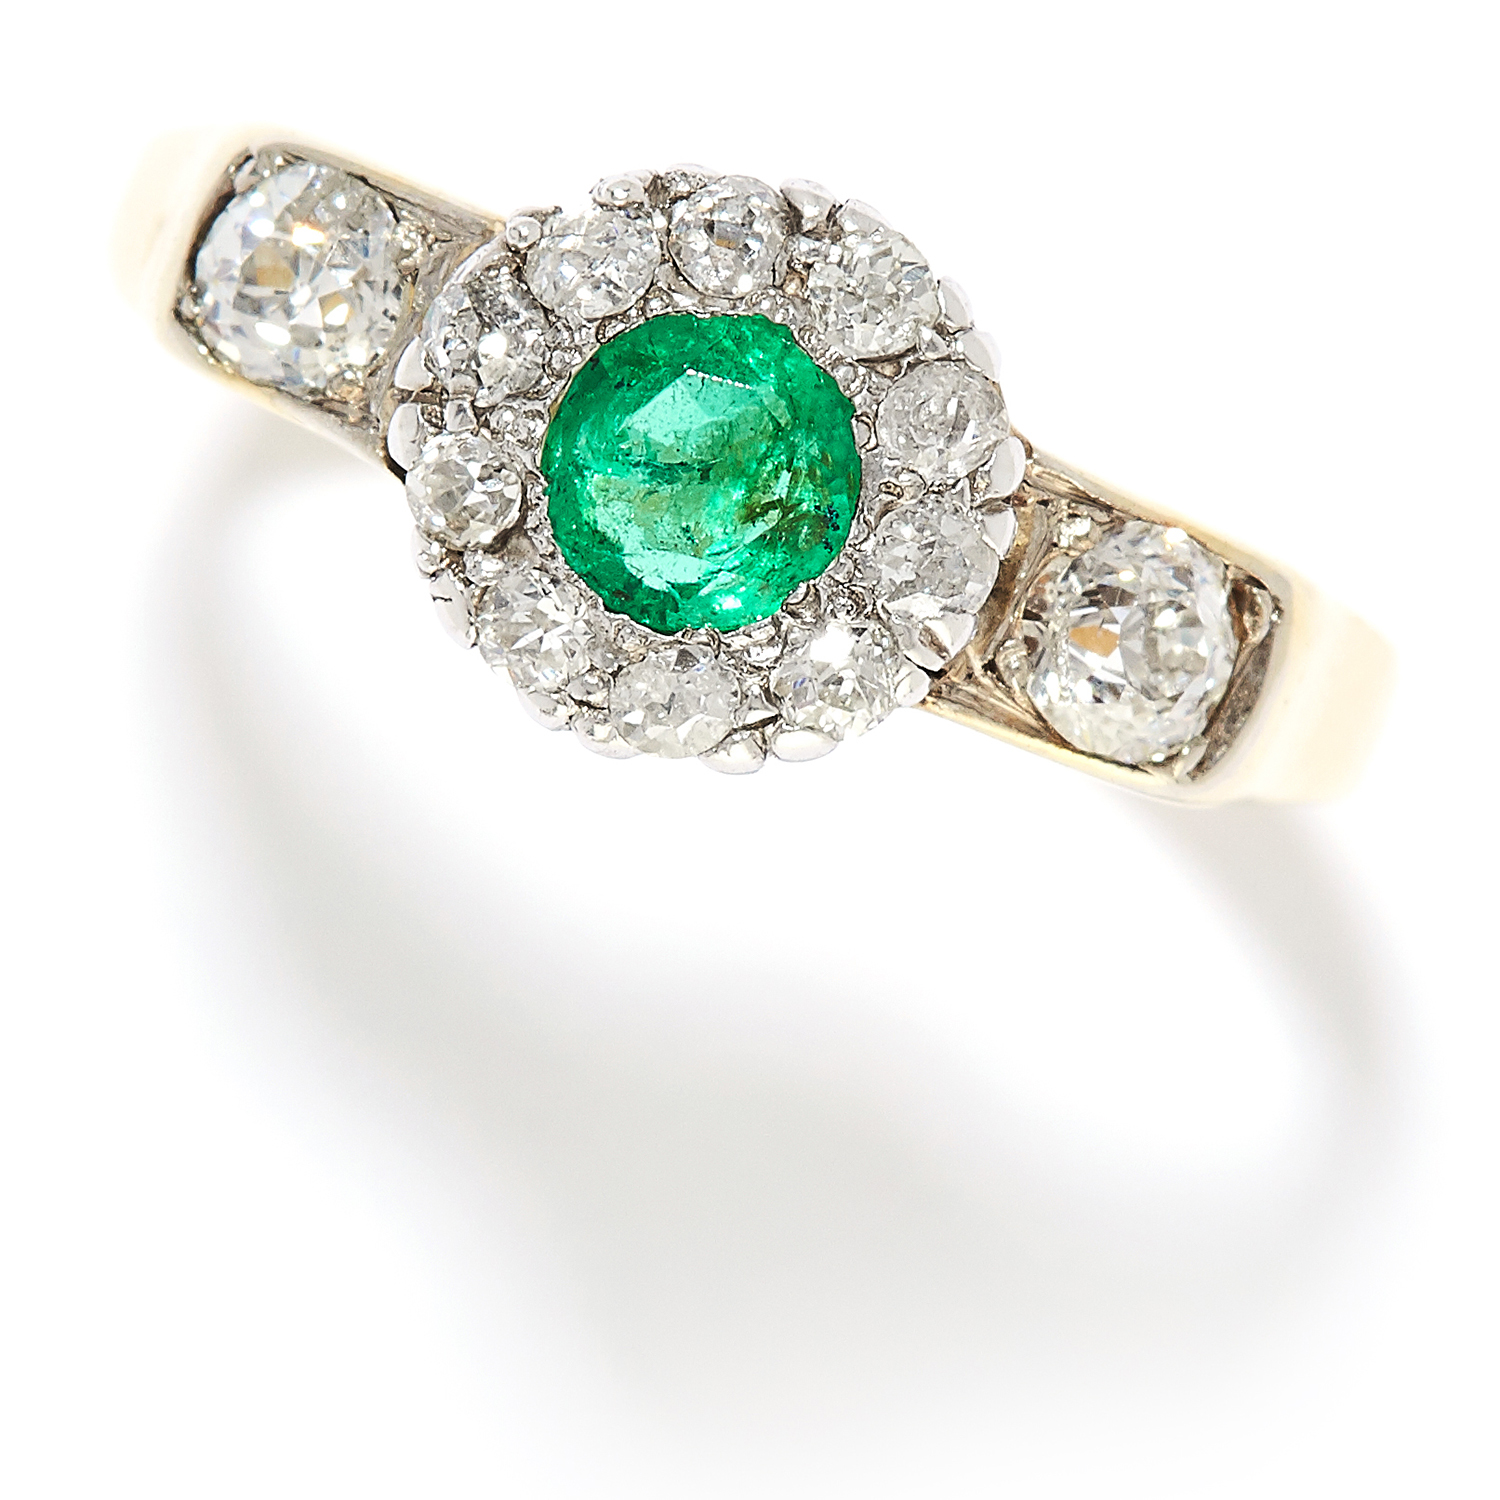 0.85 CARAT EMERALD AND DIAMOND RING in yellow gold, set with a round cut emerald of approximately